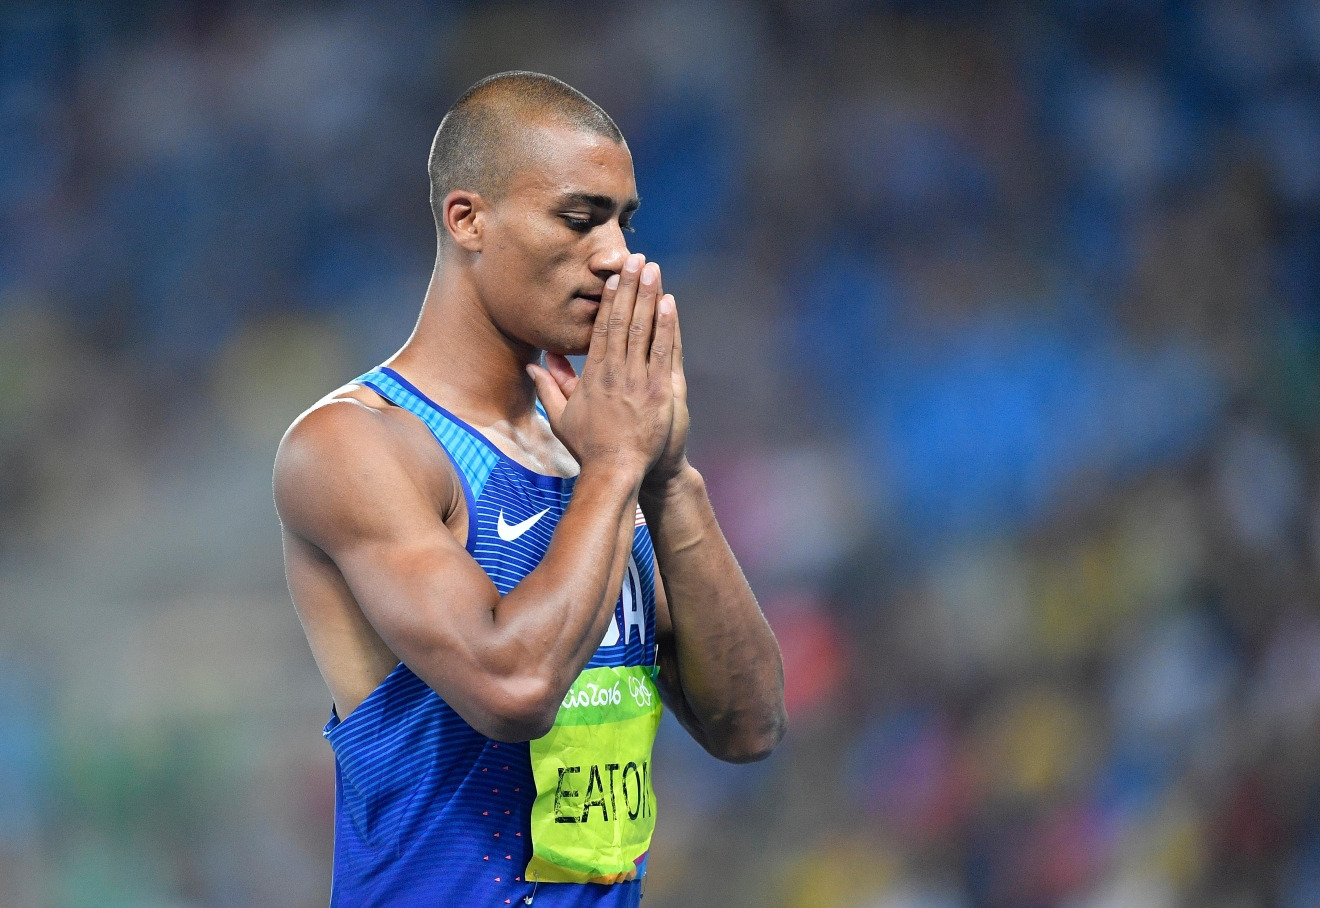 United States' Ashton Eaton concentrates before an attempt in the high jump of the decathlon during the athletics competitions of the 2016 Summer Olympics at the Olympic stadium in Rio de Janeiro, Brazil, Wednesday, Aug. 17, 2016. (AP Photo/Martin Meissner)